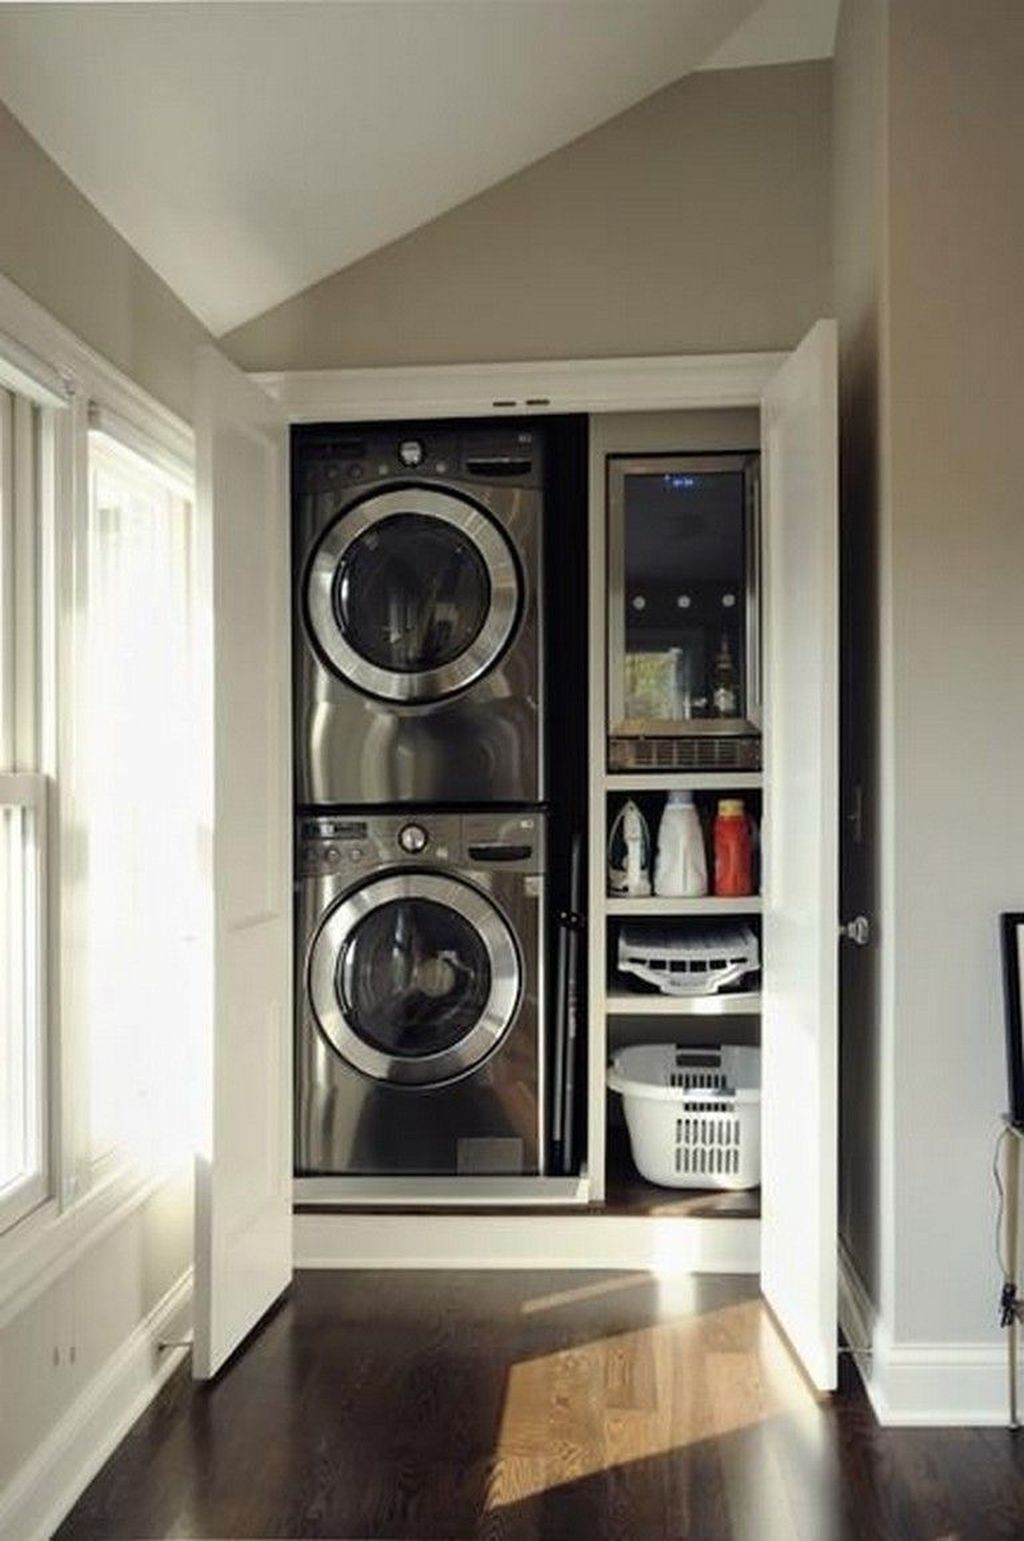 32 Awesome Modern Laundry Room Decor Ideas The Laundry Room Is A